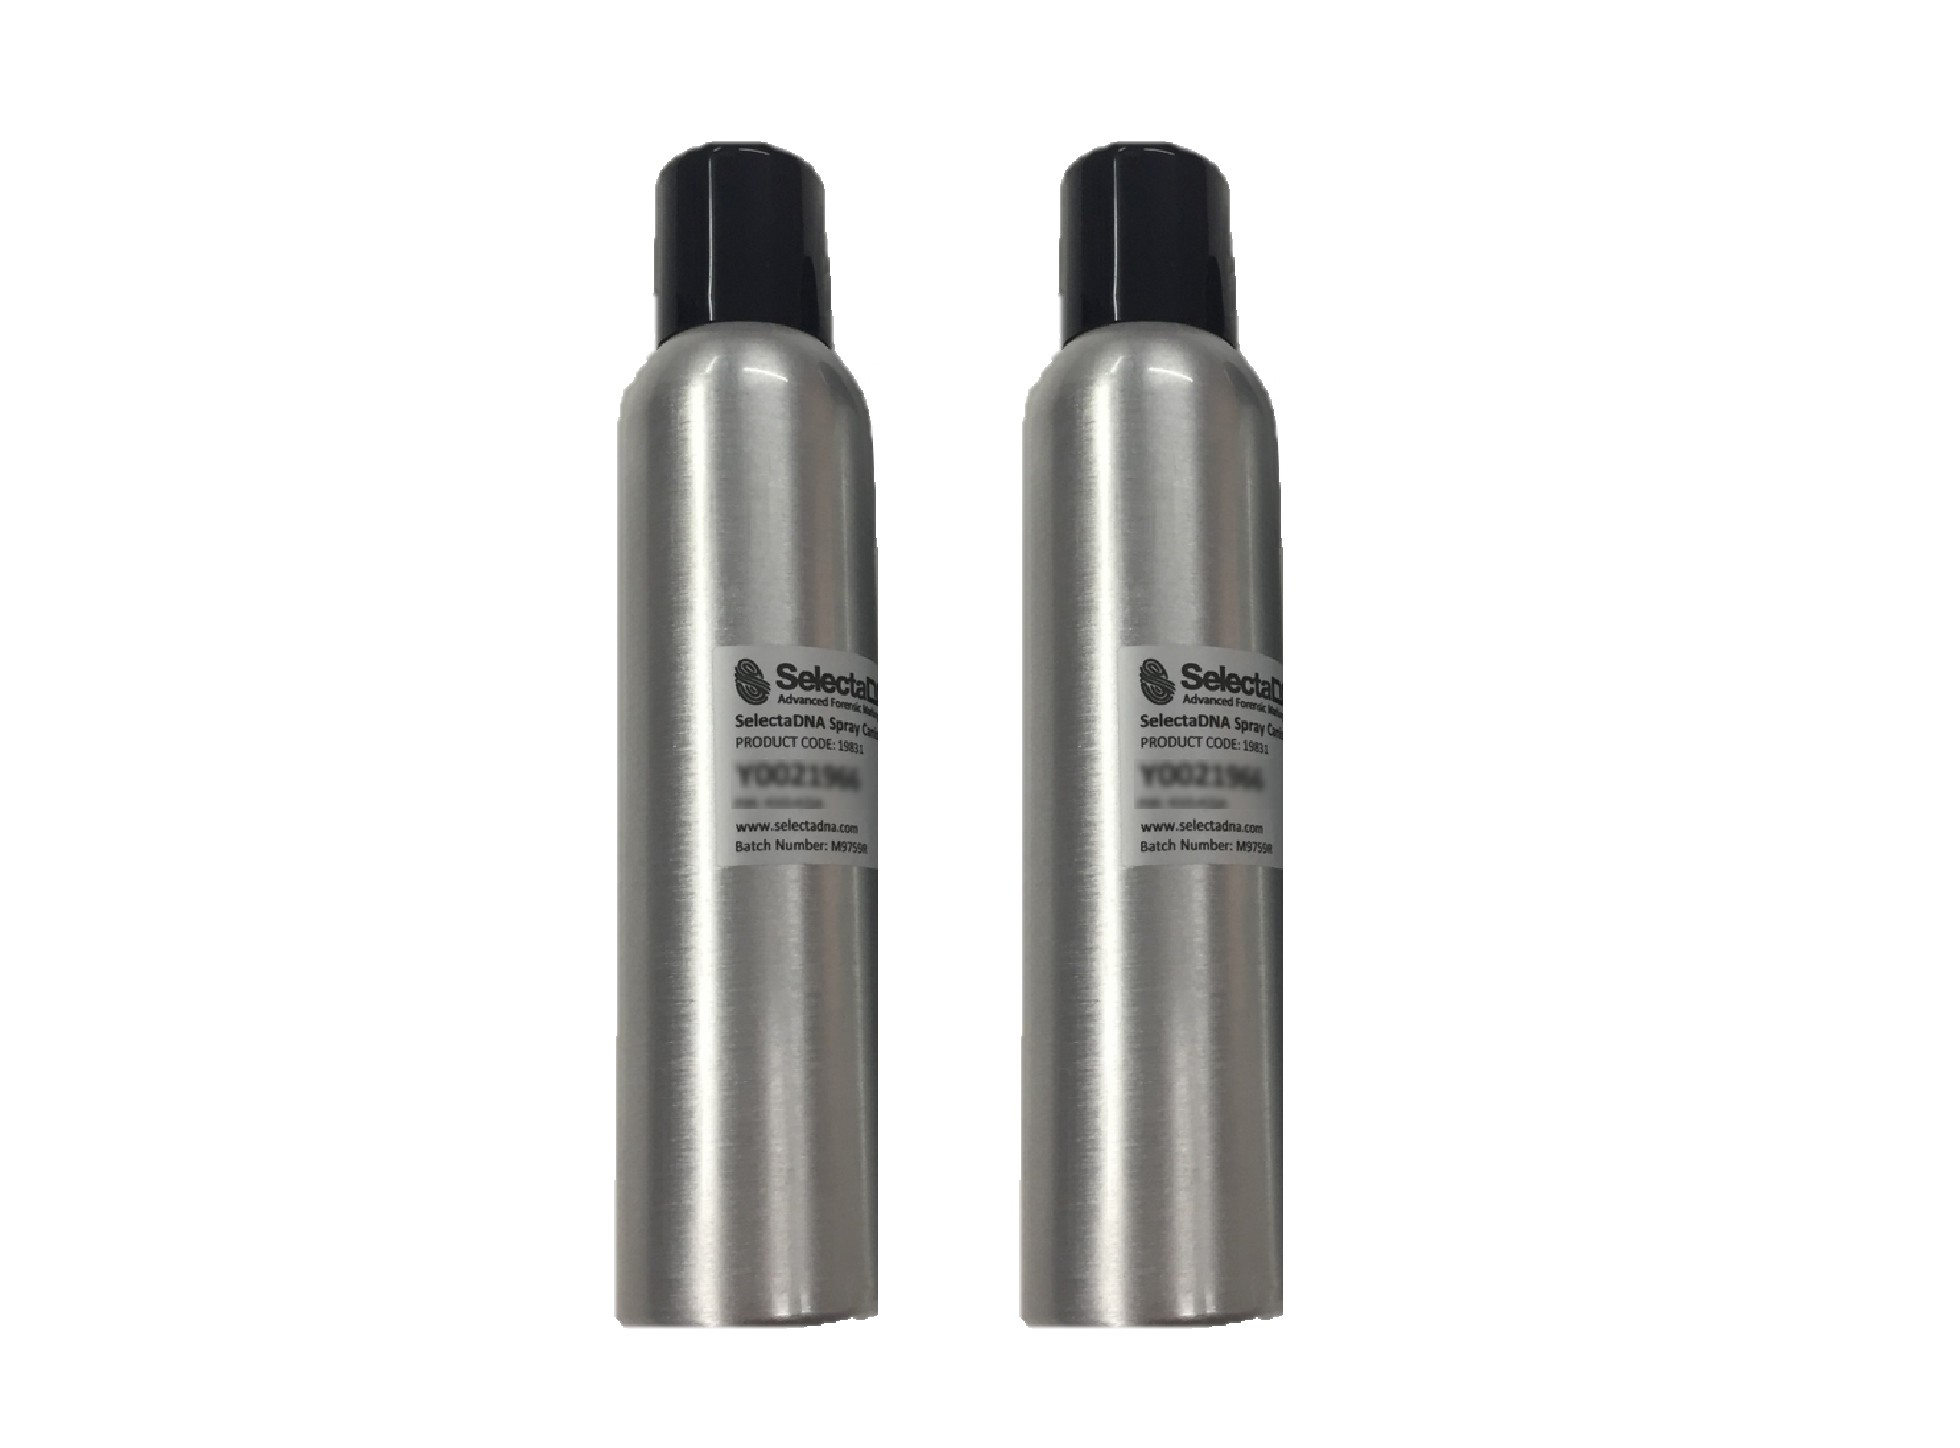 SelectaDNA Aerosols for Slimline Unit (Twin Code)